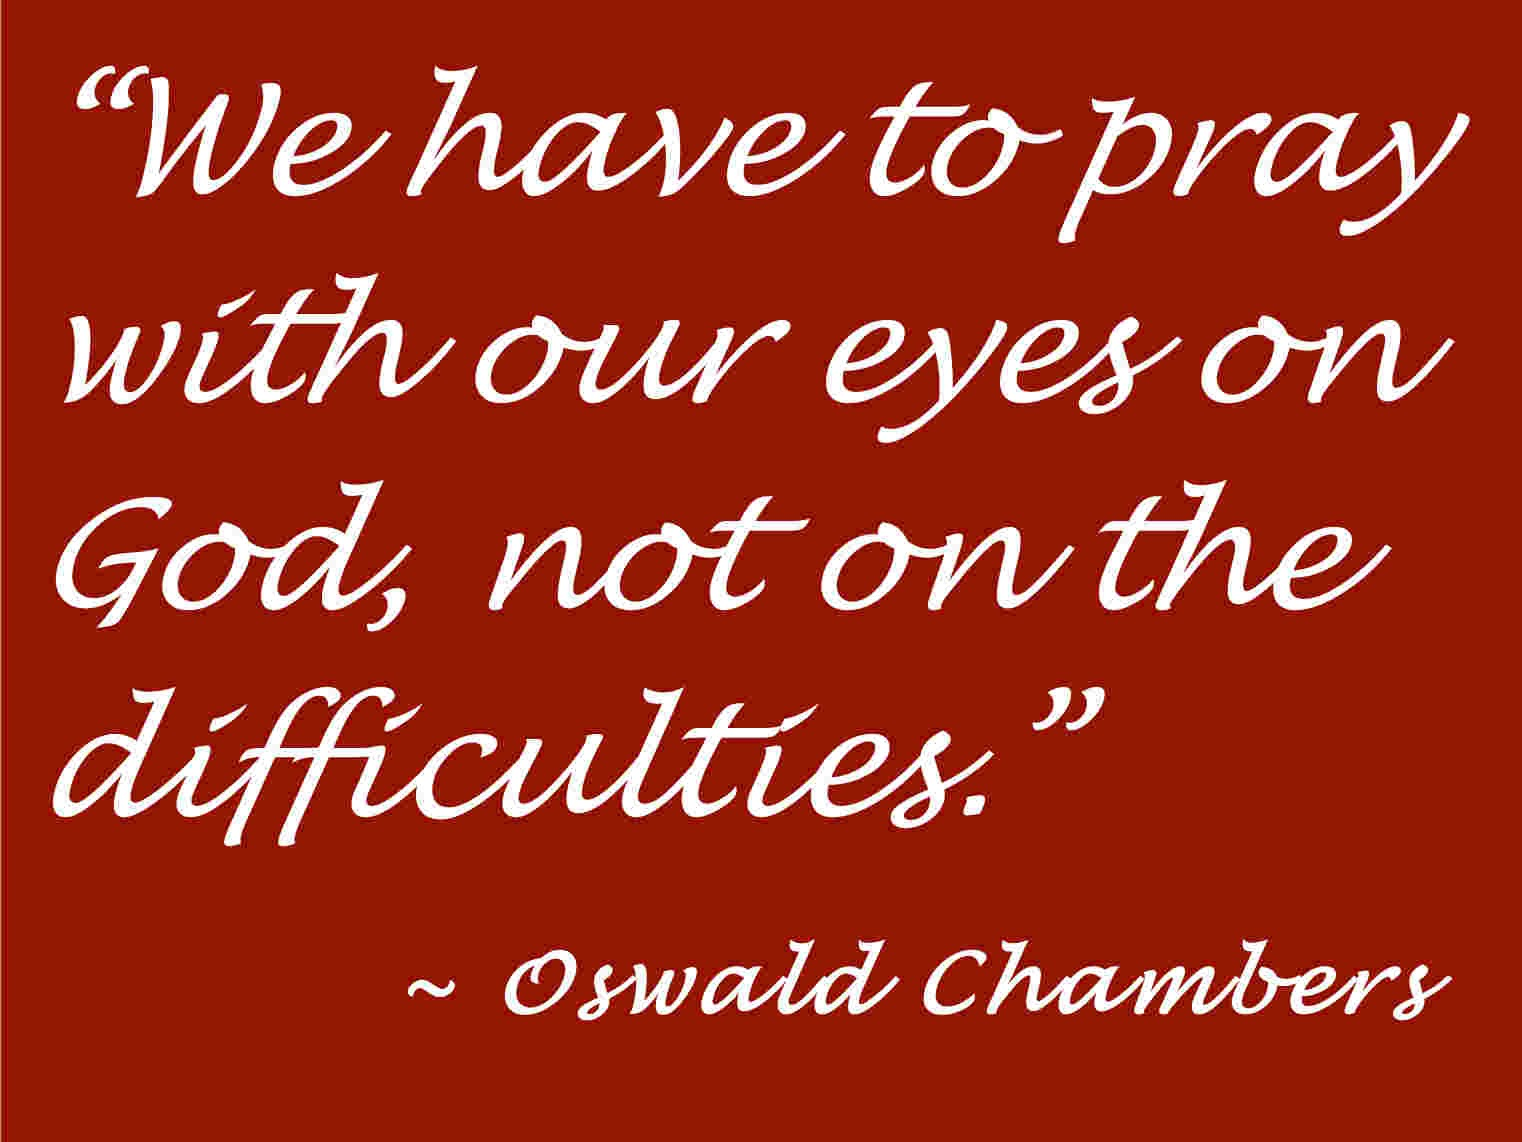 Espoused to Him: Praying through our difficulties...